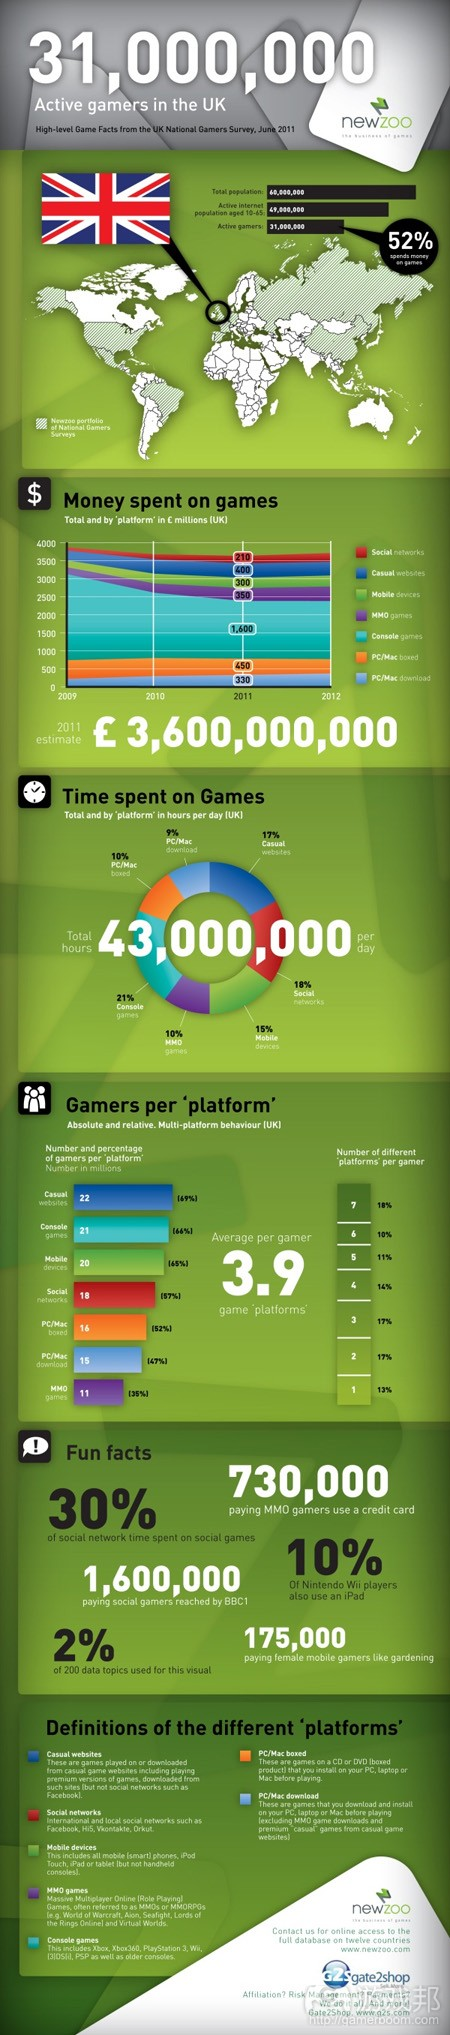 game market in the UK(from Newzoo)